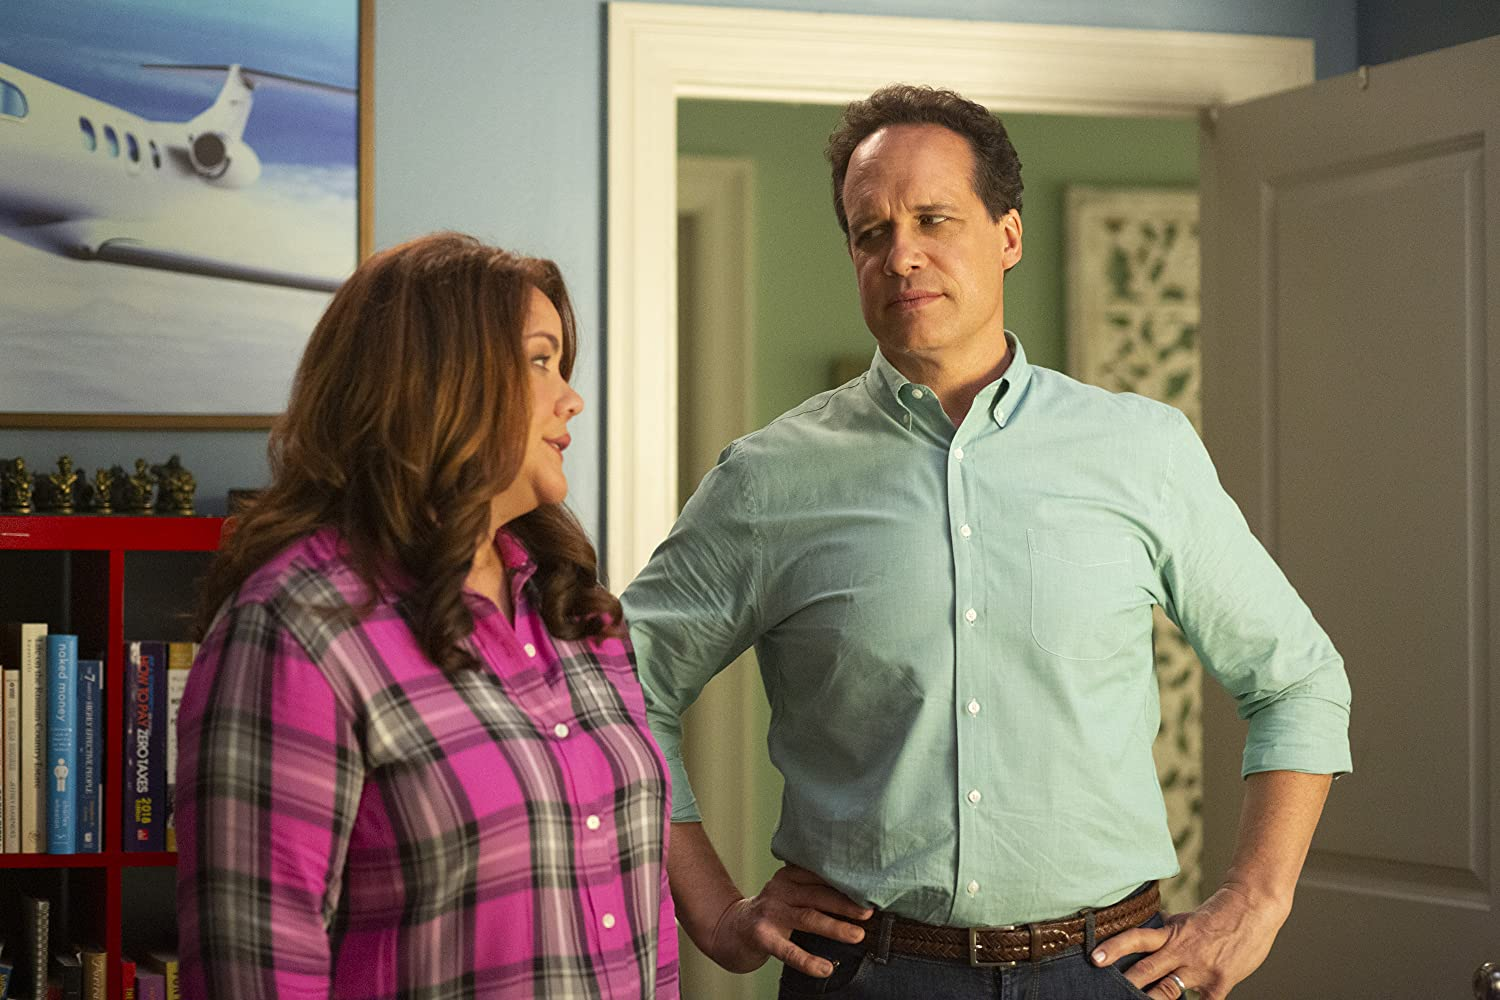 Diedrich Bader and Katy Mixon in The Minivan (2019)